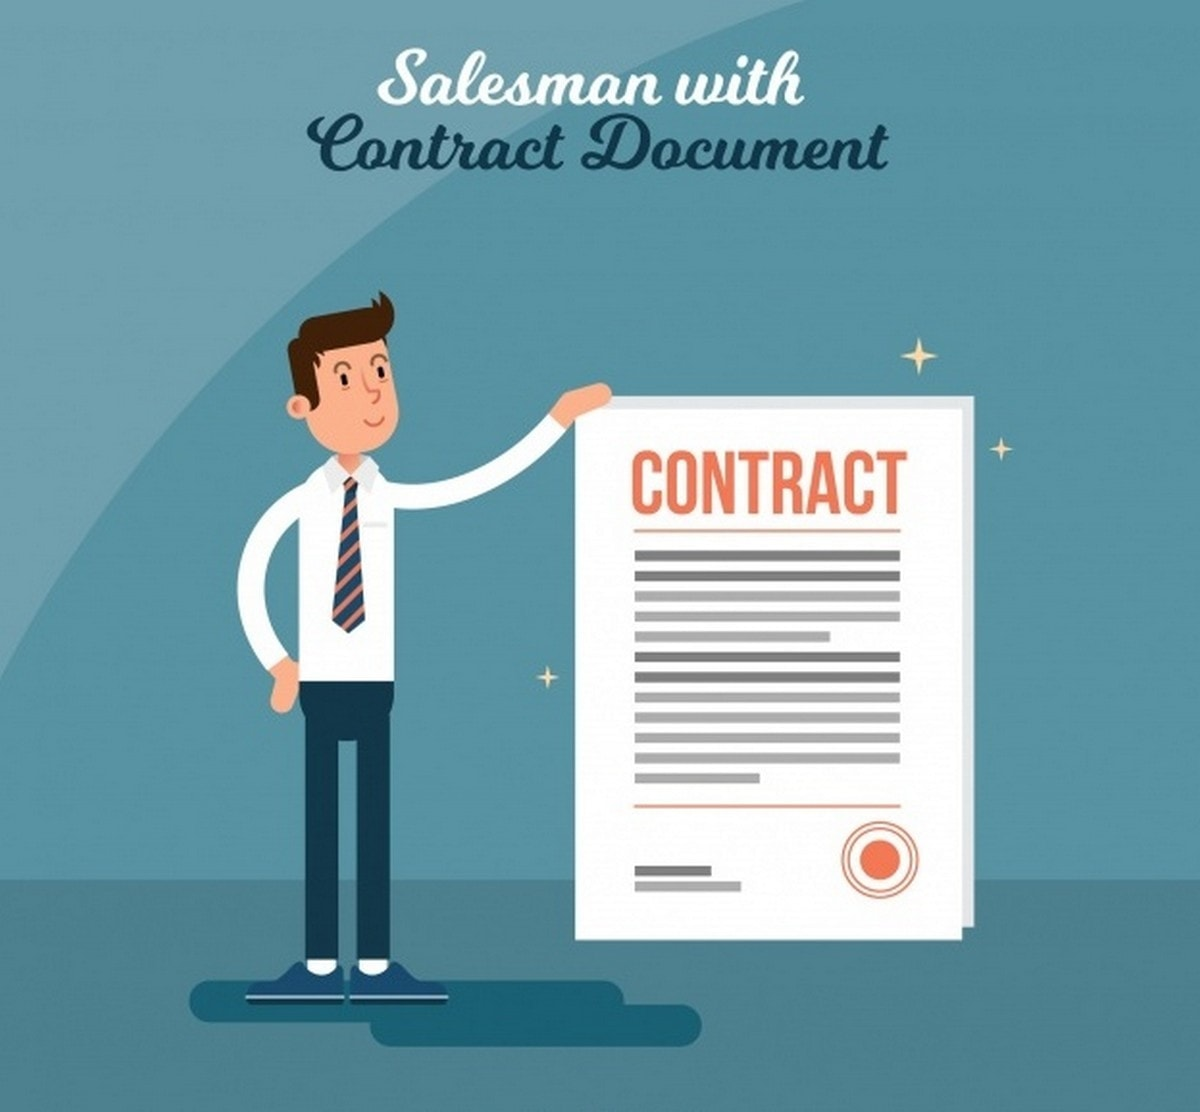 Sales contract - 1